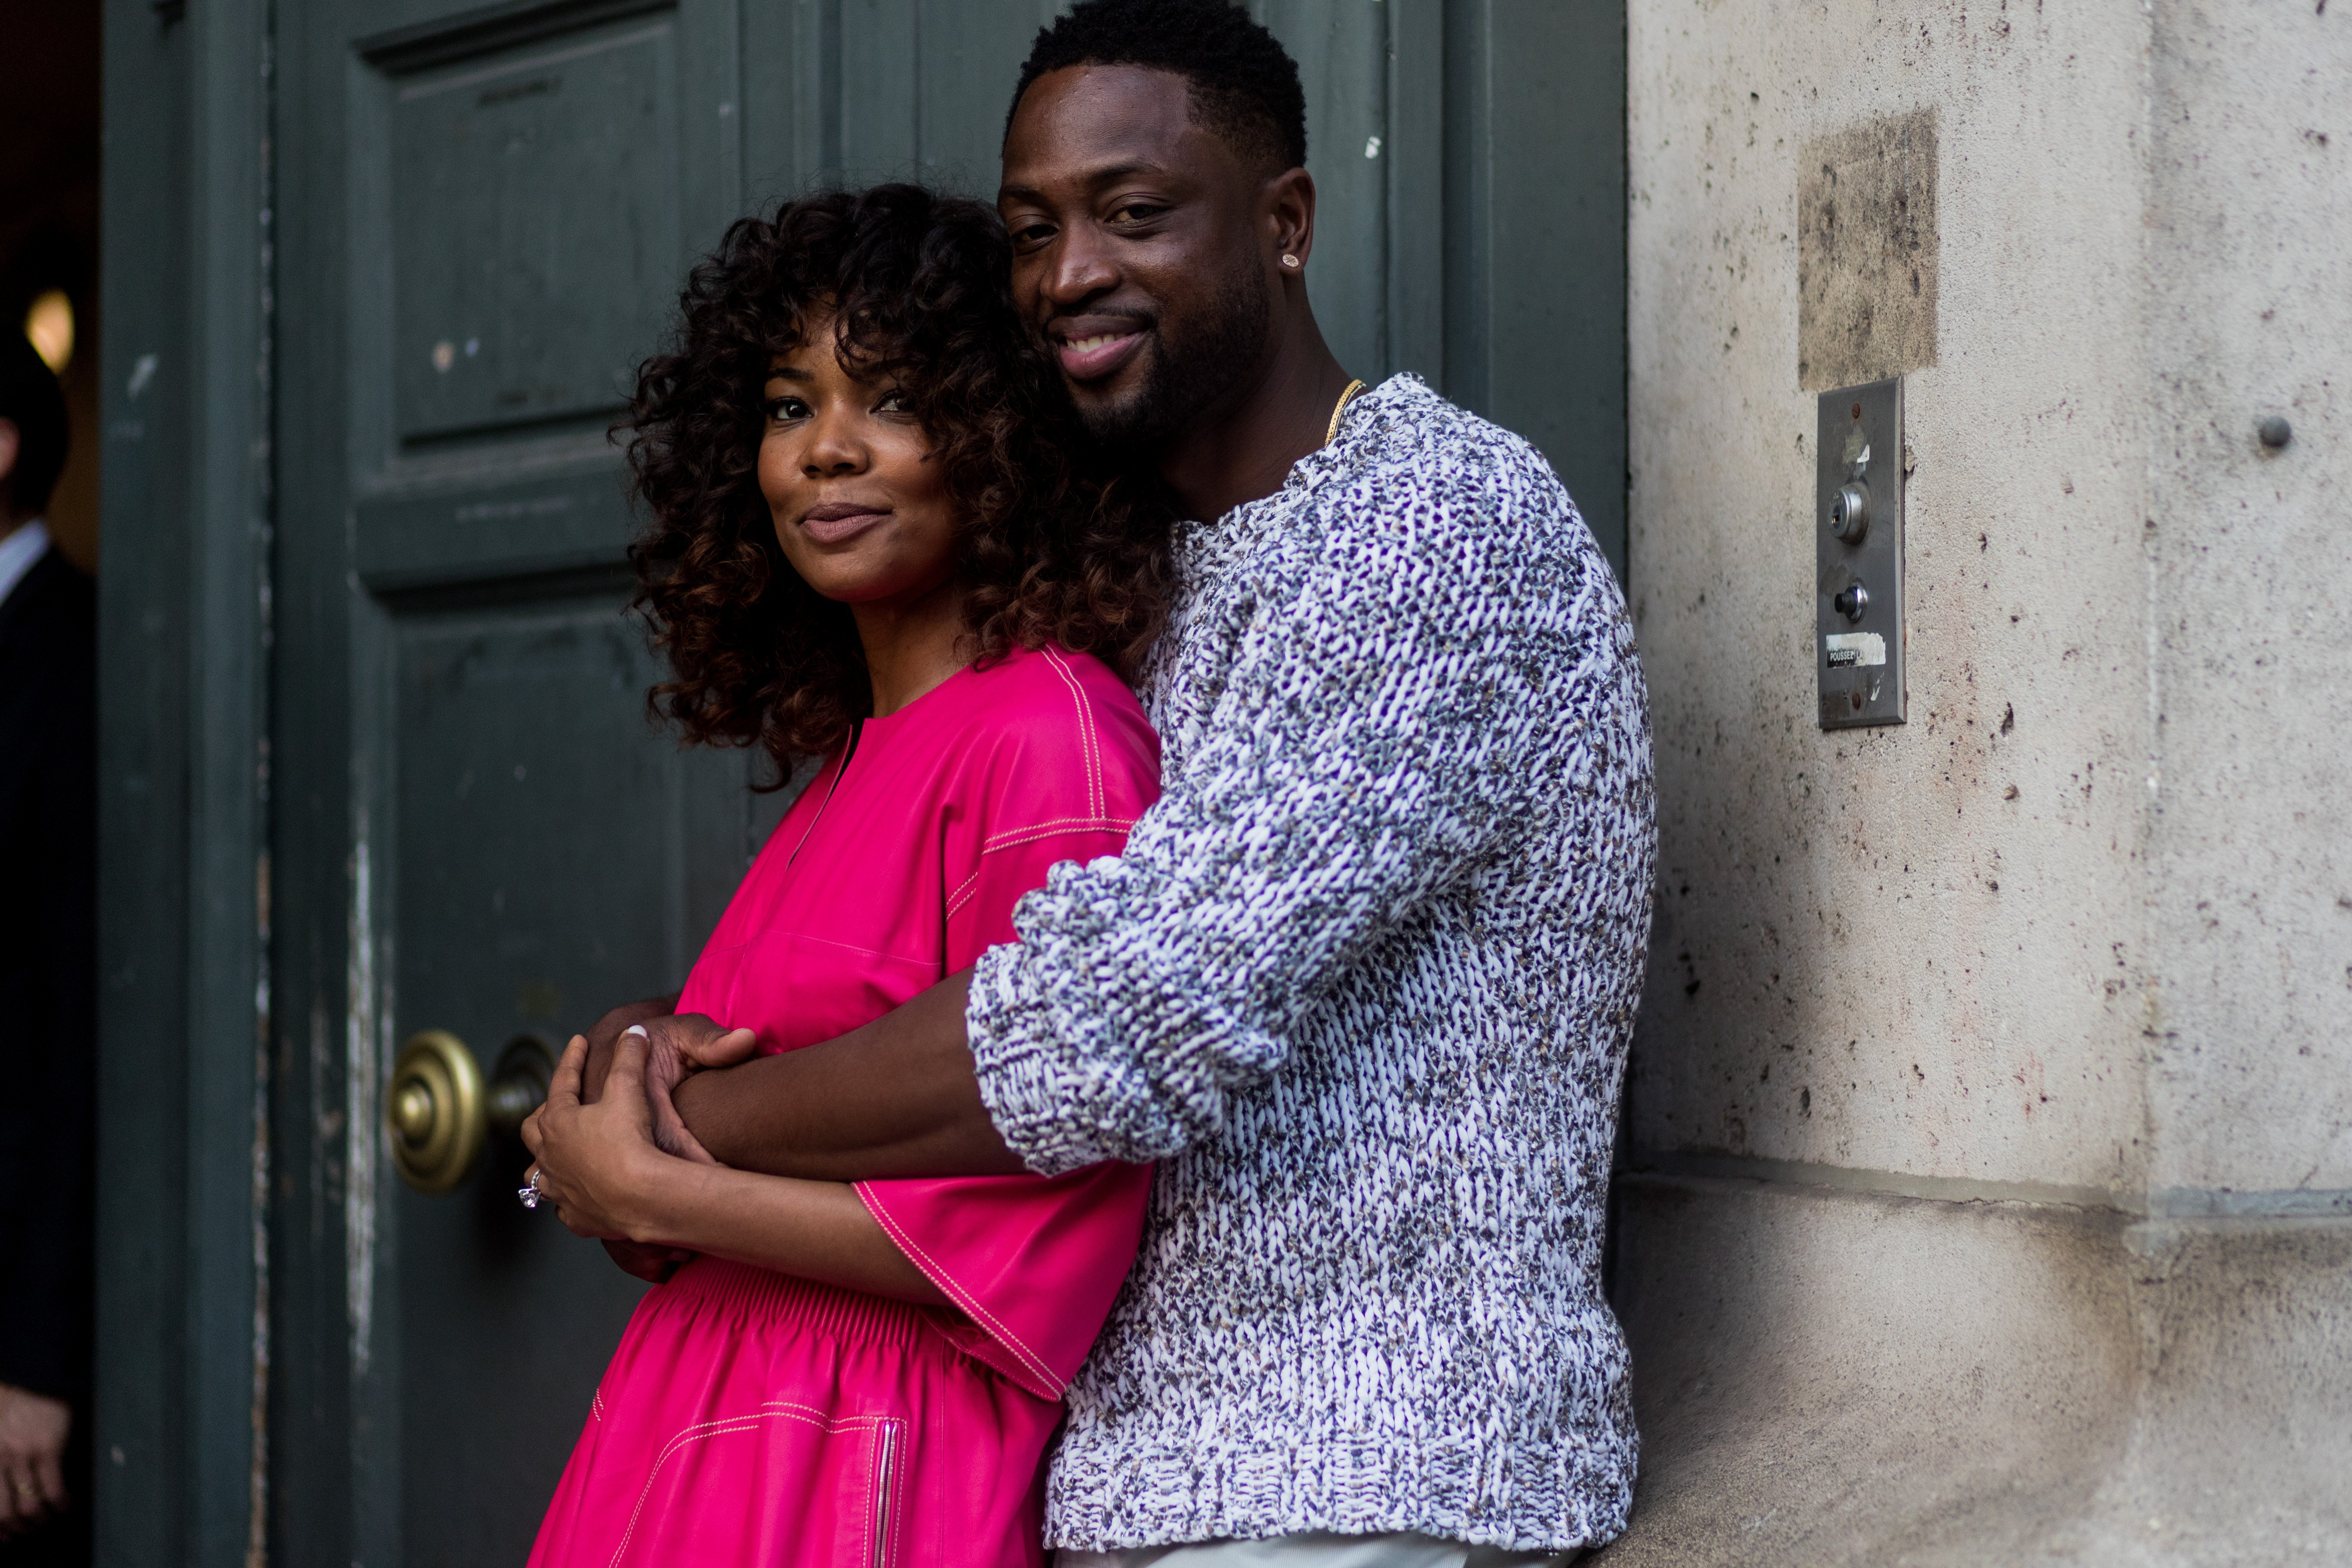 Gabrielle Union and Dwyane Wade hug outside Hermes during Paris Fashion Week in Paris, France on June 24, 2017 | Photo: Getty Images